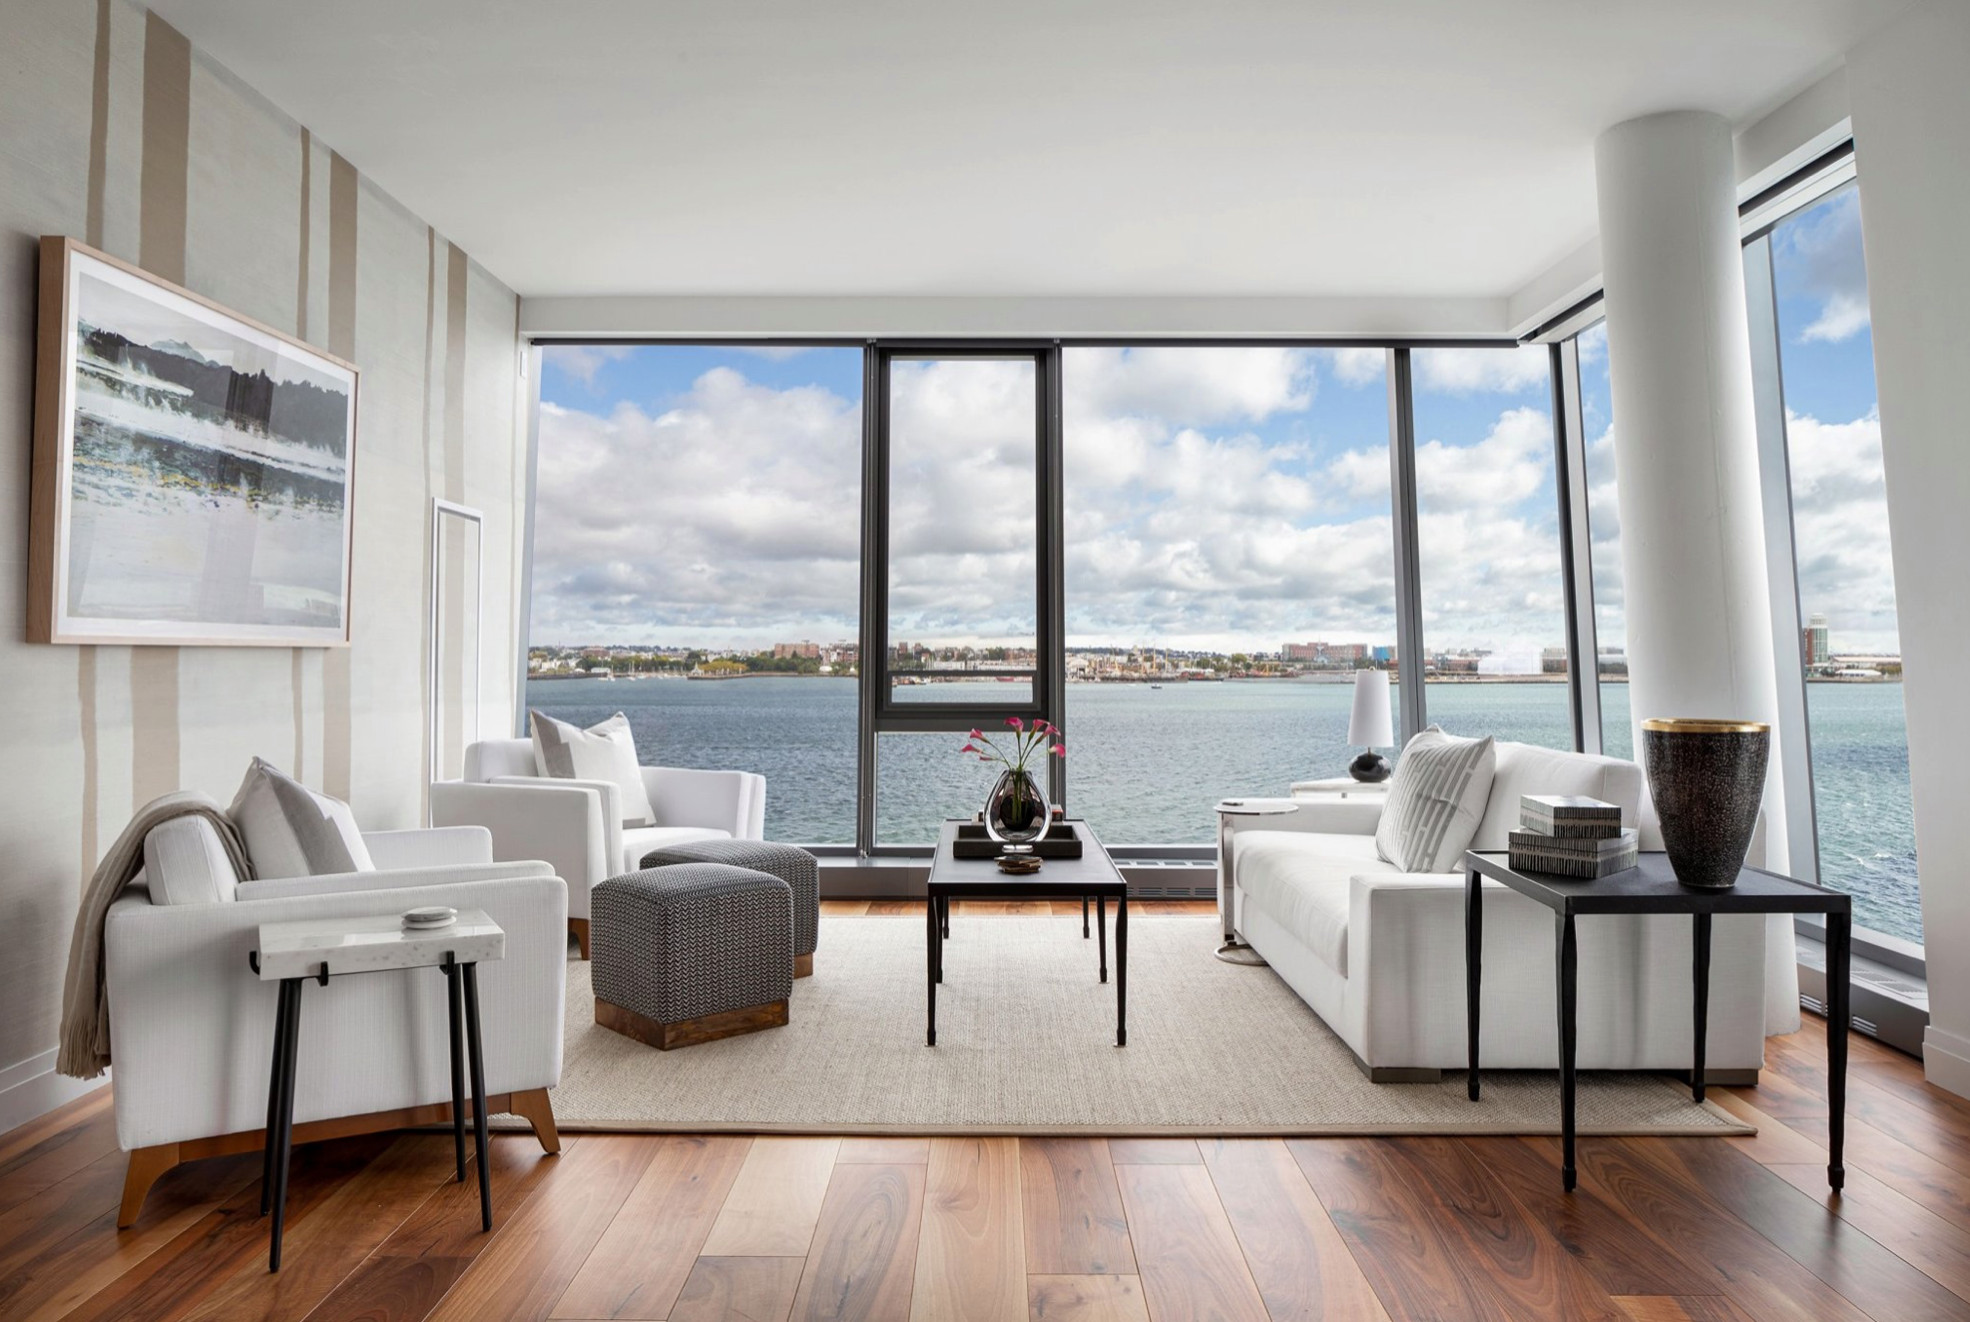 The Models At Pier 4. Luxury Waterfront Condominiums